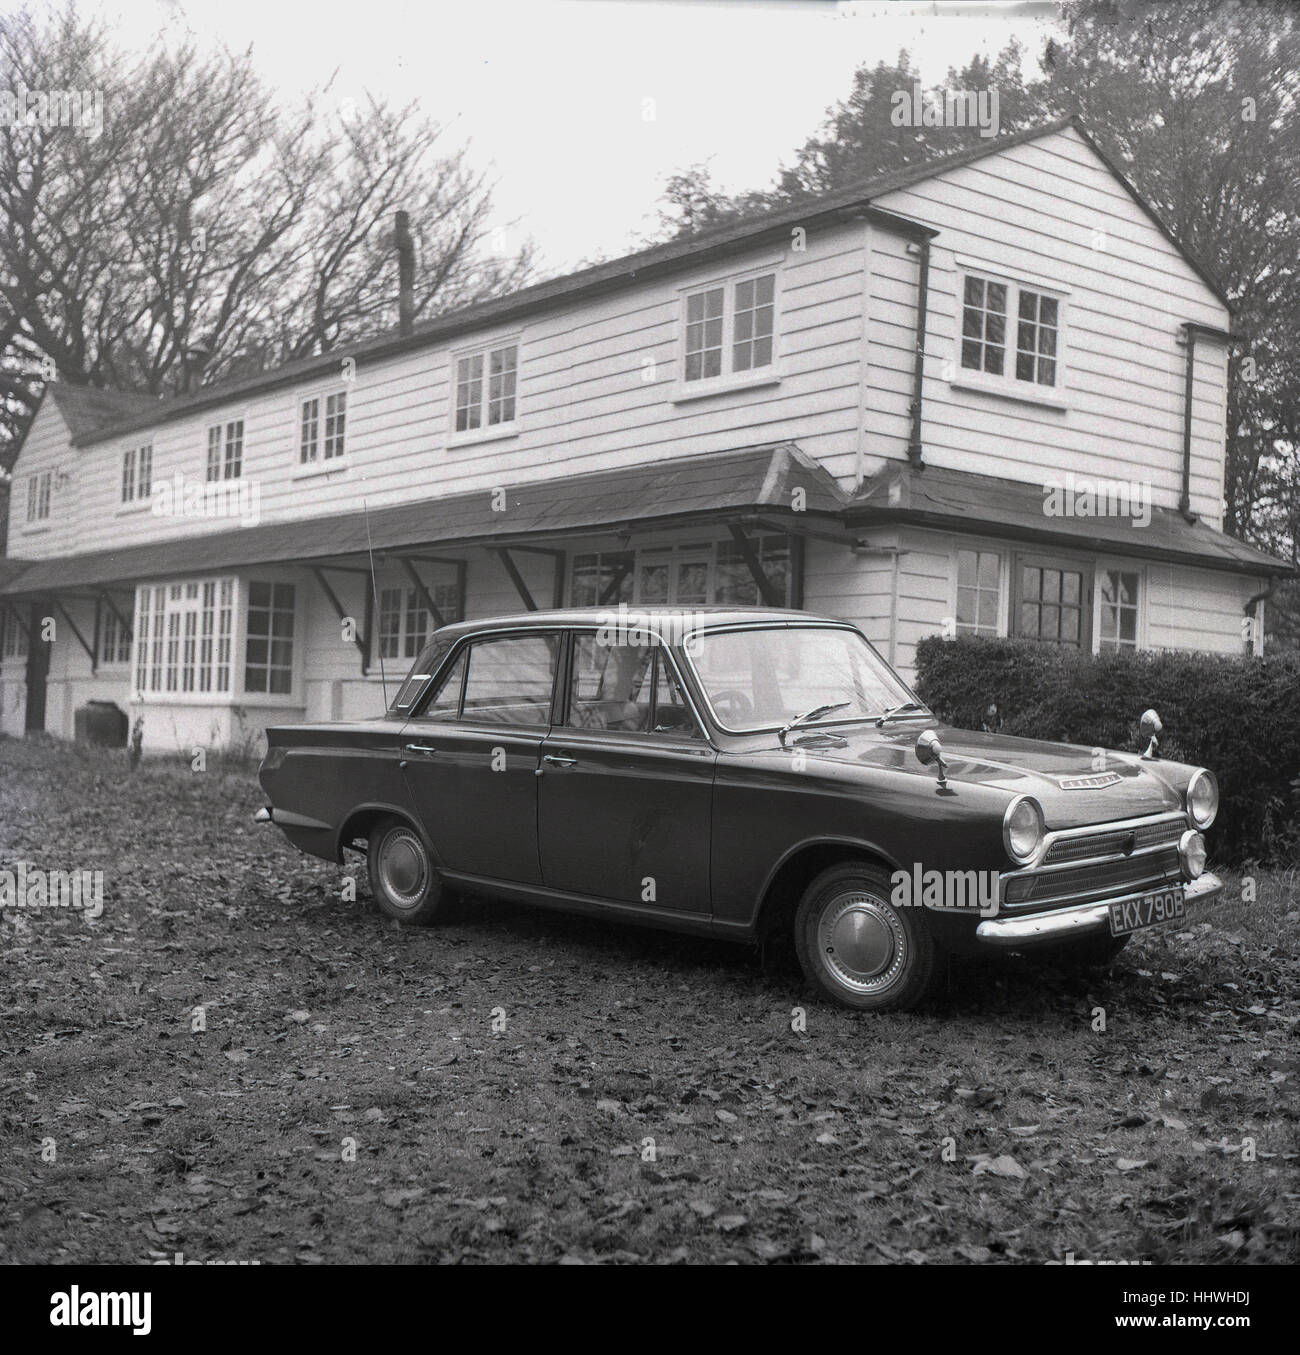 1960s, historical, Ford Cortina car with registration 'EKX 790B' parked outside large house, England, UK. Stock Photo